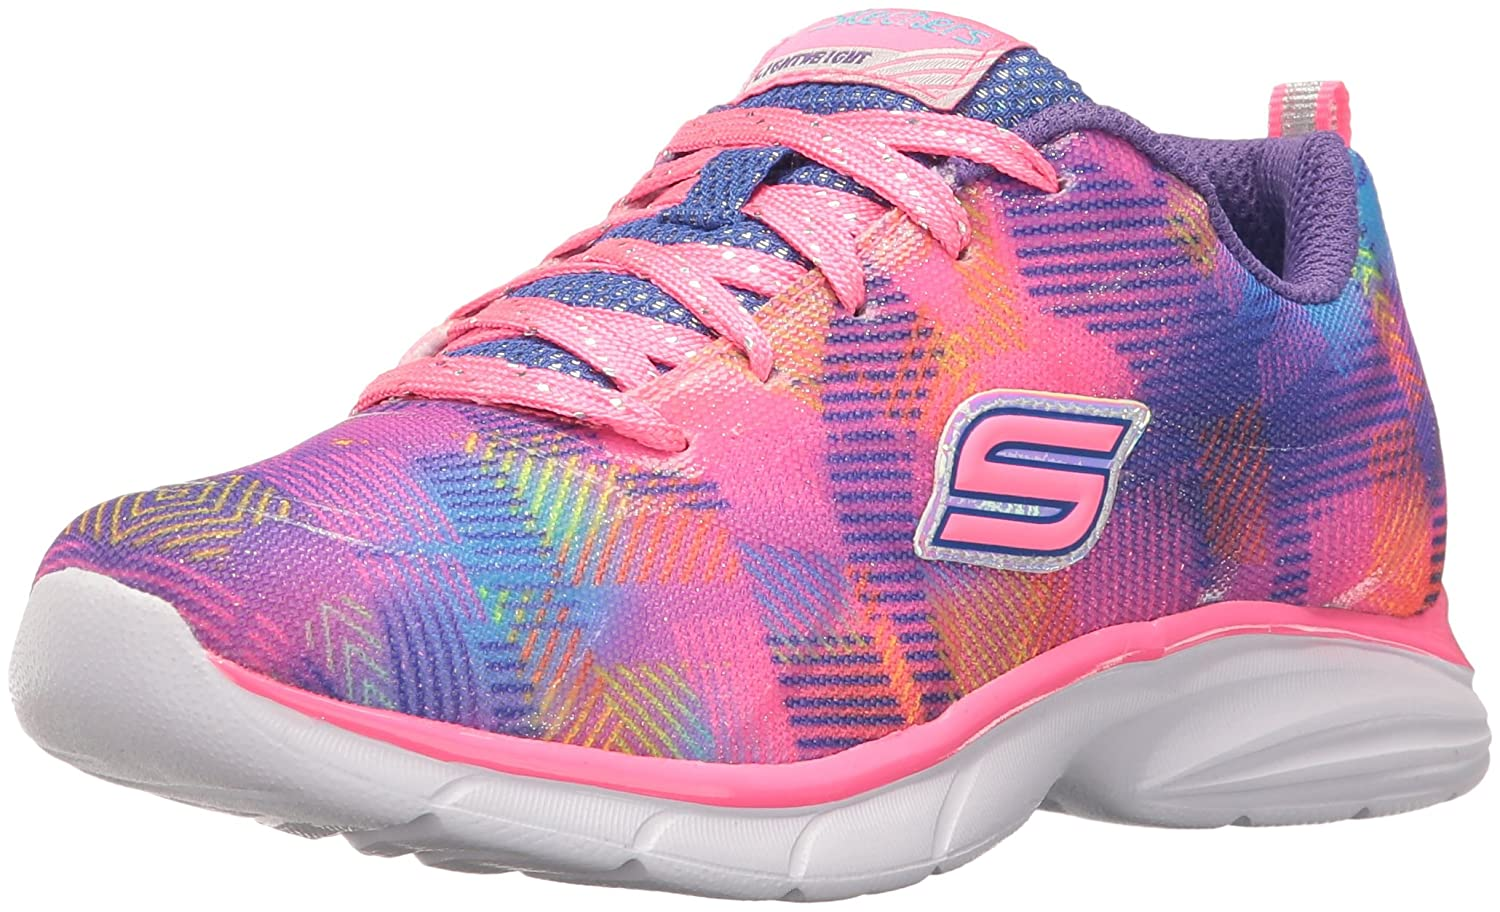 Skechers Kids Girls' Spirit Sprintz-Color Wave Sneaker 81336L